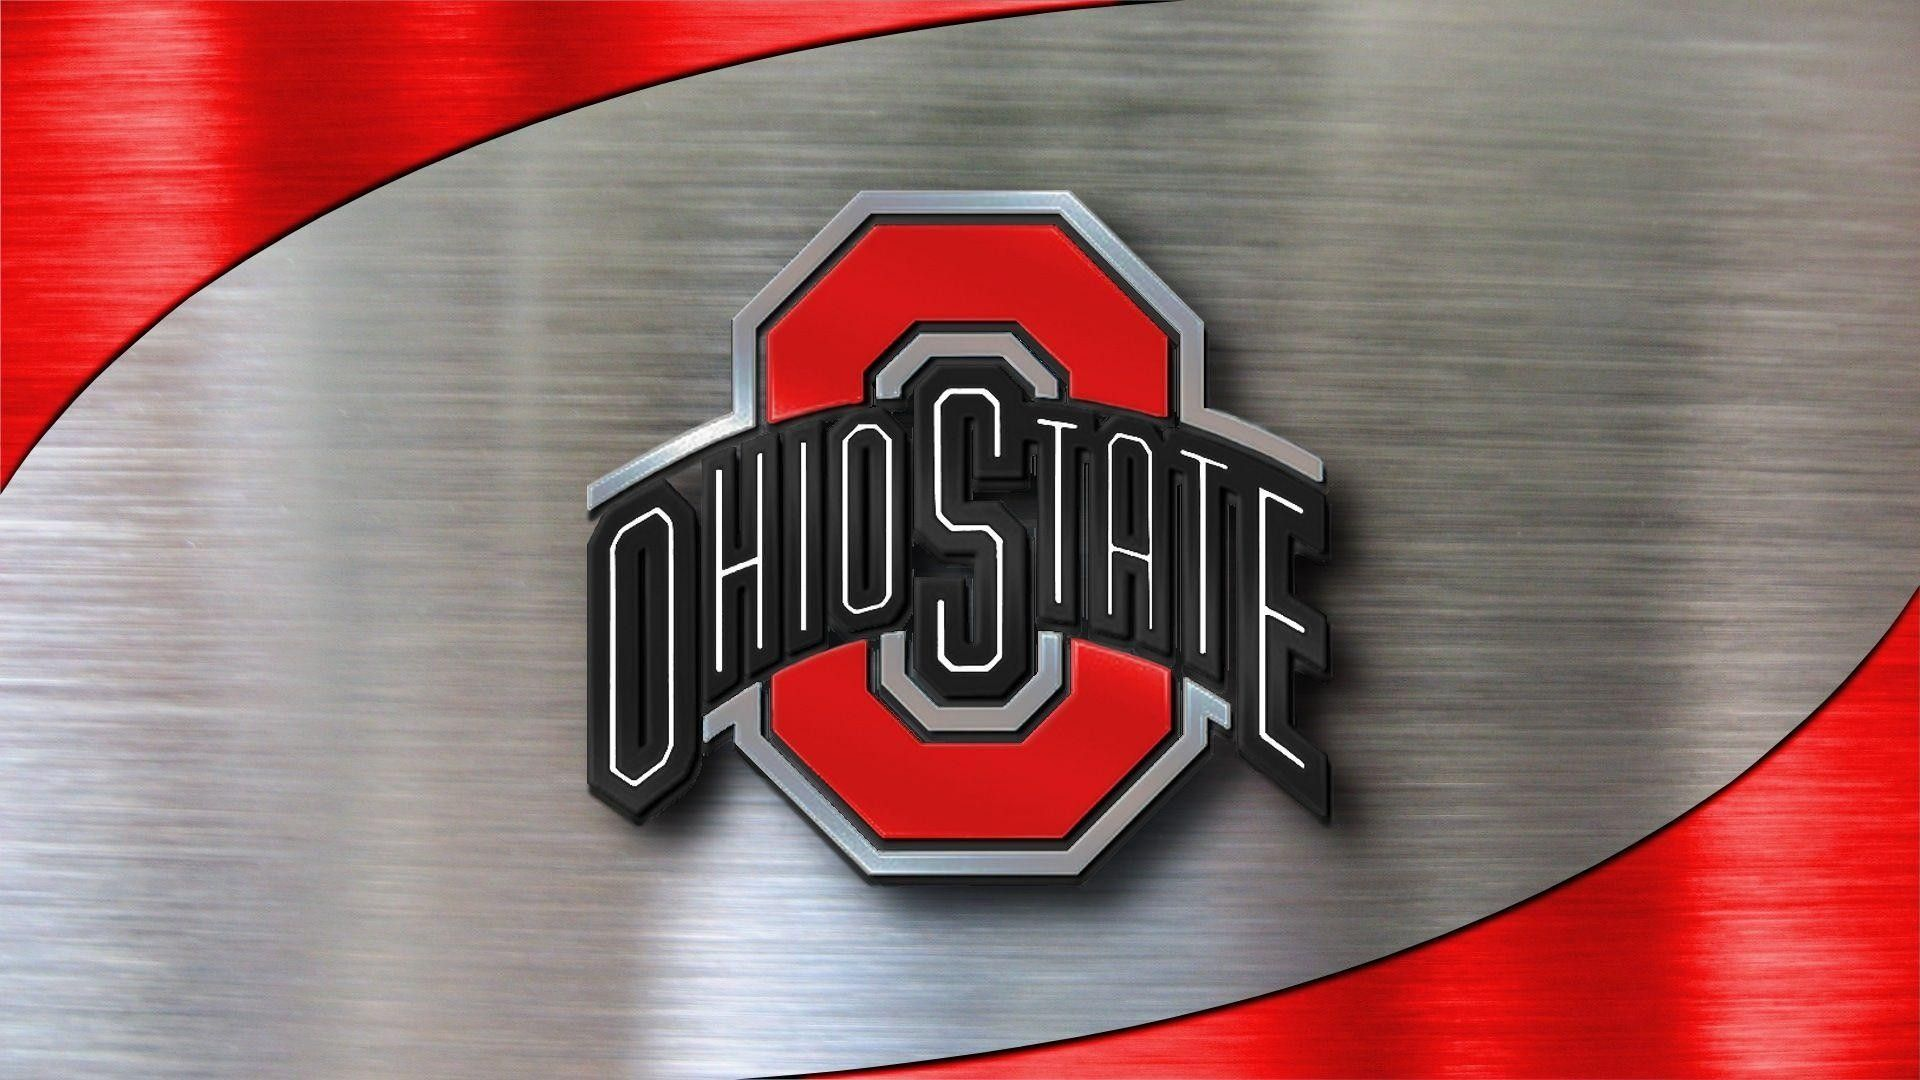 Hd Ohio State Buckeyes Football Wallpaper 2020 Live Wallpaper Hd Ohio State Buckeyes Football Ohio State Wallpaper Ohio State Football